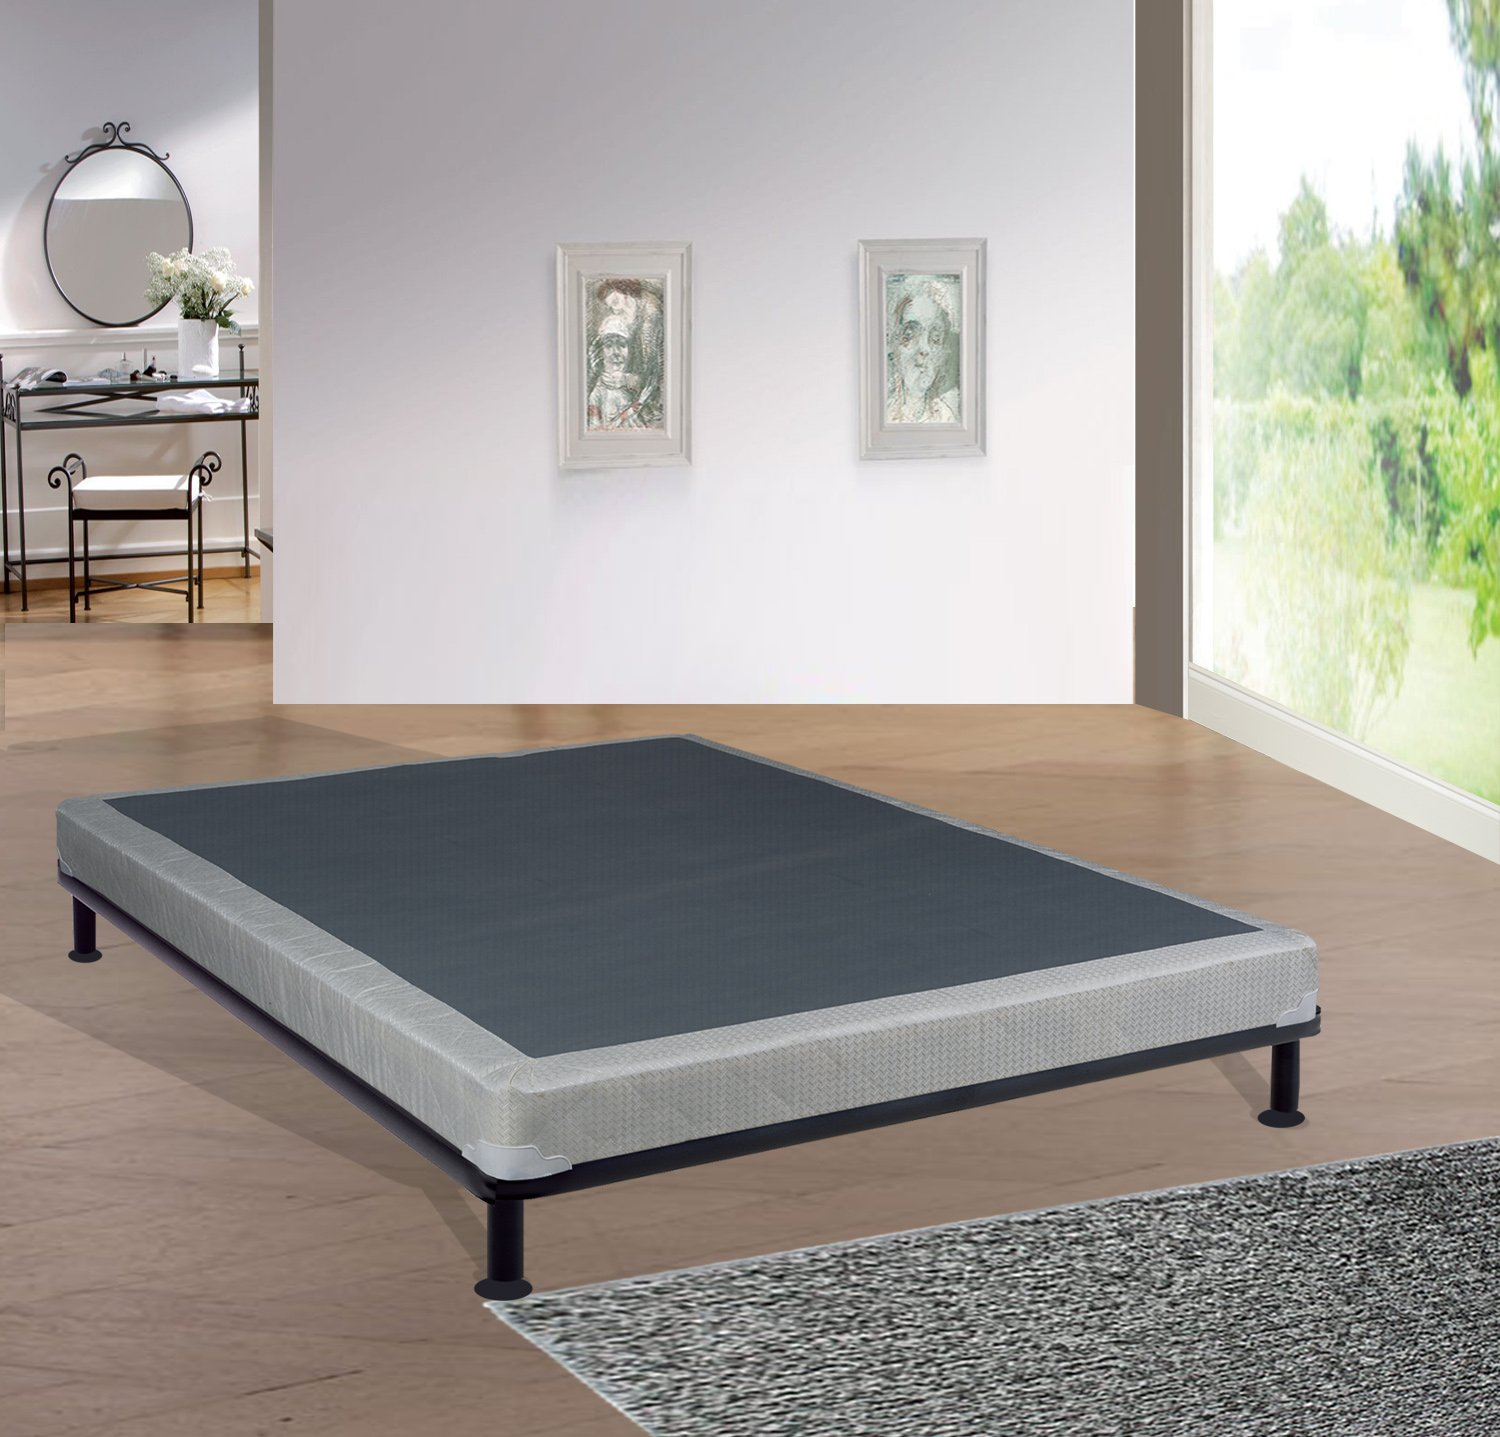 Spinal Solution 4-Inch Assembled Box Spring for Mattress, SensationCollection, Twin Size